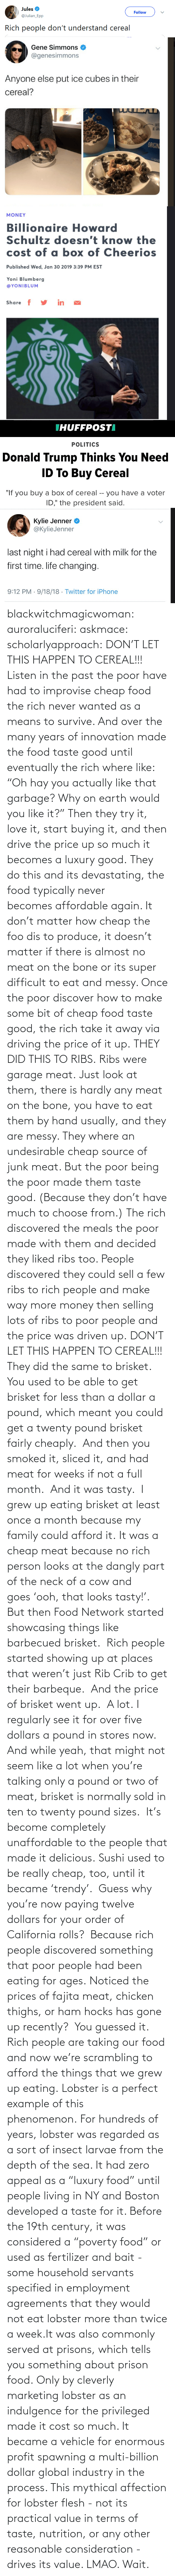 "png: blackwitchmagicwoman: auroraluciferi:  askmace:  scholarlyapproach:  DON'T LET THIS HAPPEN TO CEREAL!!! Listen in the past the poor have had to improvise cheap food the rich never wanted as a means to survive. And over the many years of innovation made the food taste good until eventually the rich where like: ""Oh hay you actually like that garbage? Why on earth would you like it?"" Then they try it, love it, start buying it, and then drive the price up so much it becomes a luxury good. They do this and its devastating, the food typically never becomes affordable again. It don't matter how cheap the foo dis to produce, it doesn't matter if there is almost no meat on the bone or its super difficult to eat and messy. Once the poor discover how to make some bit of cheap food taste good, the rich take it away via driving the price of it up. THEY DID THIS TO RIBS. Ribs were garage meat. Just look at them, there is hardly any meat on the bone, you have to eat them by hand usually, and they are messy. They where an undesirable cheap source of junk meat. But the poor being the poor made them taste good. (Because they don't have much to choose from.) The rich discovered the meals the poor made with them and decided they liked ribs too. People discovered they could sell a few ribs to rich people and make way more money then selling lots of ribs to poor people and the price was driven up. DON'T LET THIS HAPPEN TO CEREAL!!!  They did the same to brisket.  You used to be able to get brisket for less than a dollar a pound, which meant you could get a twenty pound brisket fairly cheaply.  And then you smoked it, sliced it, and had meat for weeks if not a full month.  And it was tasty.  I grew up eating brisket at least once a month because my family could afford it. It was a cheap meat because no rich person looks at the dangly part of the neck of a cow and goes 'ooh, that looks tasty!'. But then Food Network started showcasing things like barbecued brisket.  Rich people started showing up at places that weren't just Rib Crib to get their barbeque.  And the price of brisket went up.  A lot. I regularly see it for over five dollars a pound in stores now.  And while yeah, that might not seem like a lot when you're talking only a pound or two of meat, brisket is normally sold in ten to twenty pound sizes.  It's become completely unaffordable to the people that made it delicious. Sushi used to be really cheap, too, until it became 'trendy'.  Guess why you're now paying twelve dollars for your order of California rolls?  Because rich people discovered something that poor people had been eating for ages. Noticed the prices of fajita meat, chicken thighs, or ham hocks has gone up recently?  You guessed it.  Rich people are taking our food and now we're scrambling to afford the things that we grew up eating.  Lobster is a perfect example of this phenomenon. For hundreds of years, lobster was regarded as a sort of insect larvae from the depth of the sea. It had zero appeal as a ""luxury food"" until people living in NY and Boston developed a taste for it. Before the 19th century, it was considered a ""poverty food"" or used as fertilizer and bait - some household servants specified in employment agreements that they would not eat lobster more than twice a week.It was also commonly served at prisons, which tells you something about prison food. Only by cleverly marketing lobster as an indulgence for the privileged made it cost so much. It became a vehicle for enormous profit spawning a multi-billion dollar global industry in the process. This mythical affection for lobster flesh - not its practical value in terms of taste, nutrition, or any other reasonable consideration - drives its value.     LMAO. Wait."